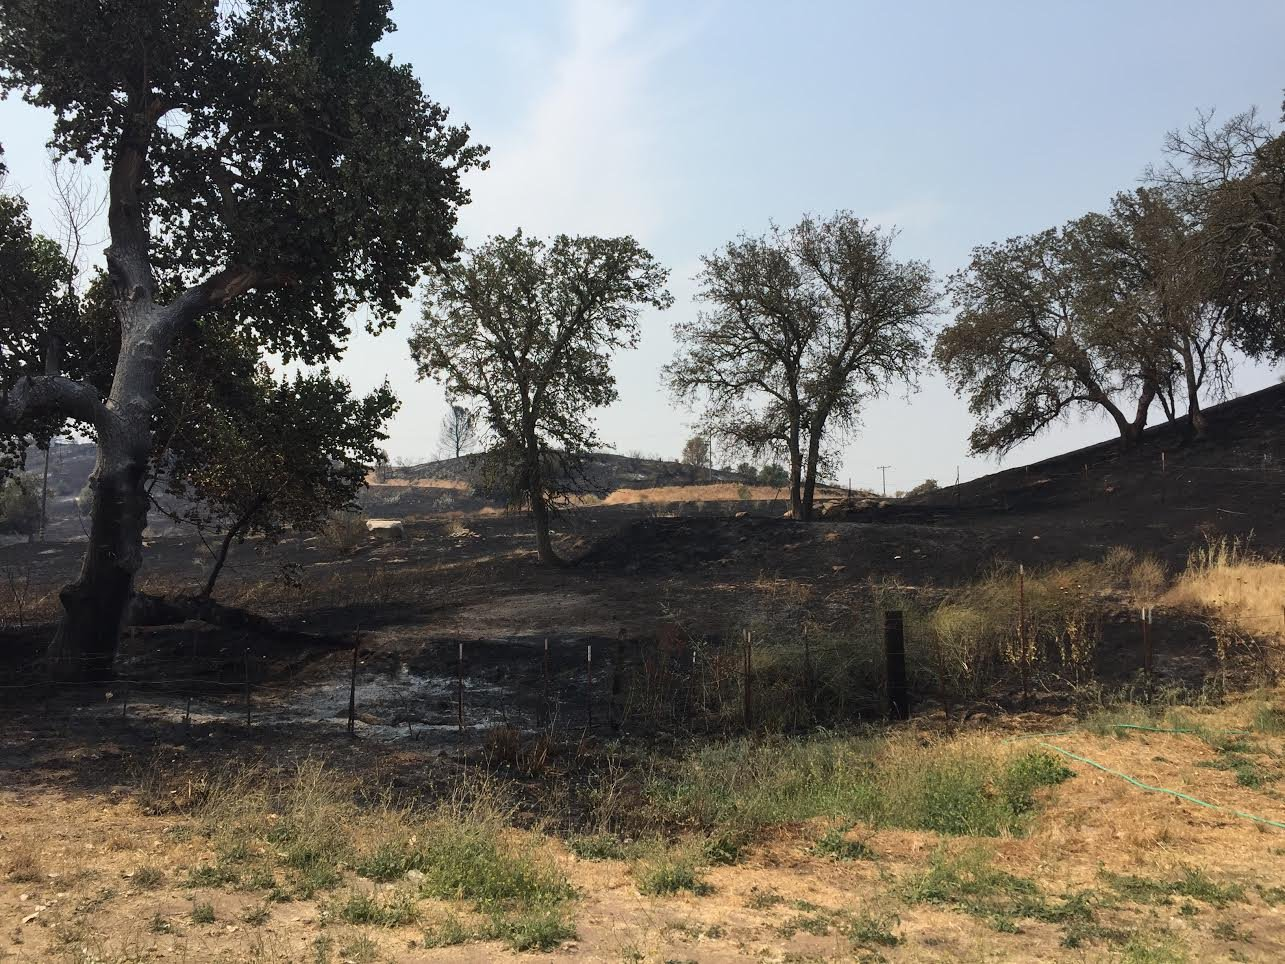 Burned hillsides at the Stone Fire. (KSBY photo)